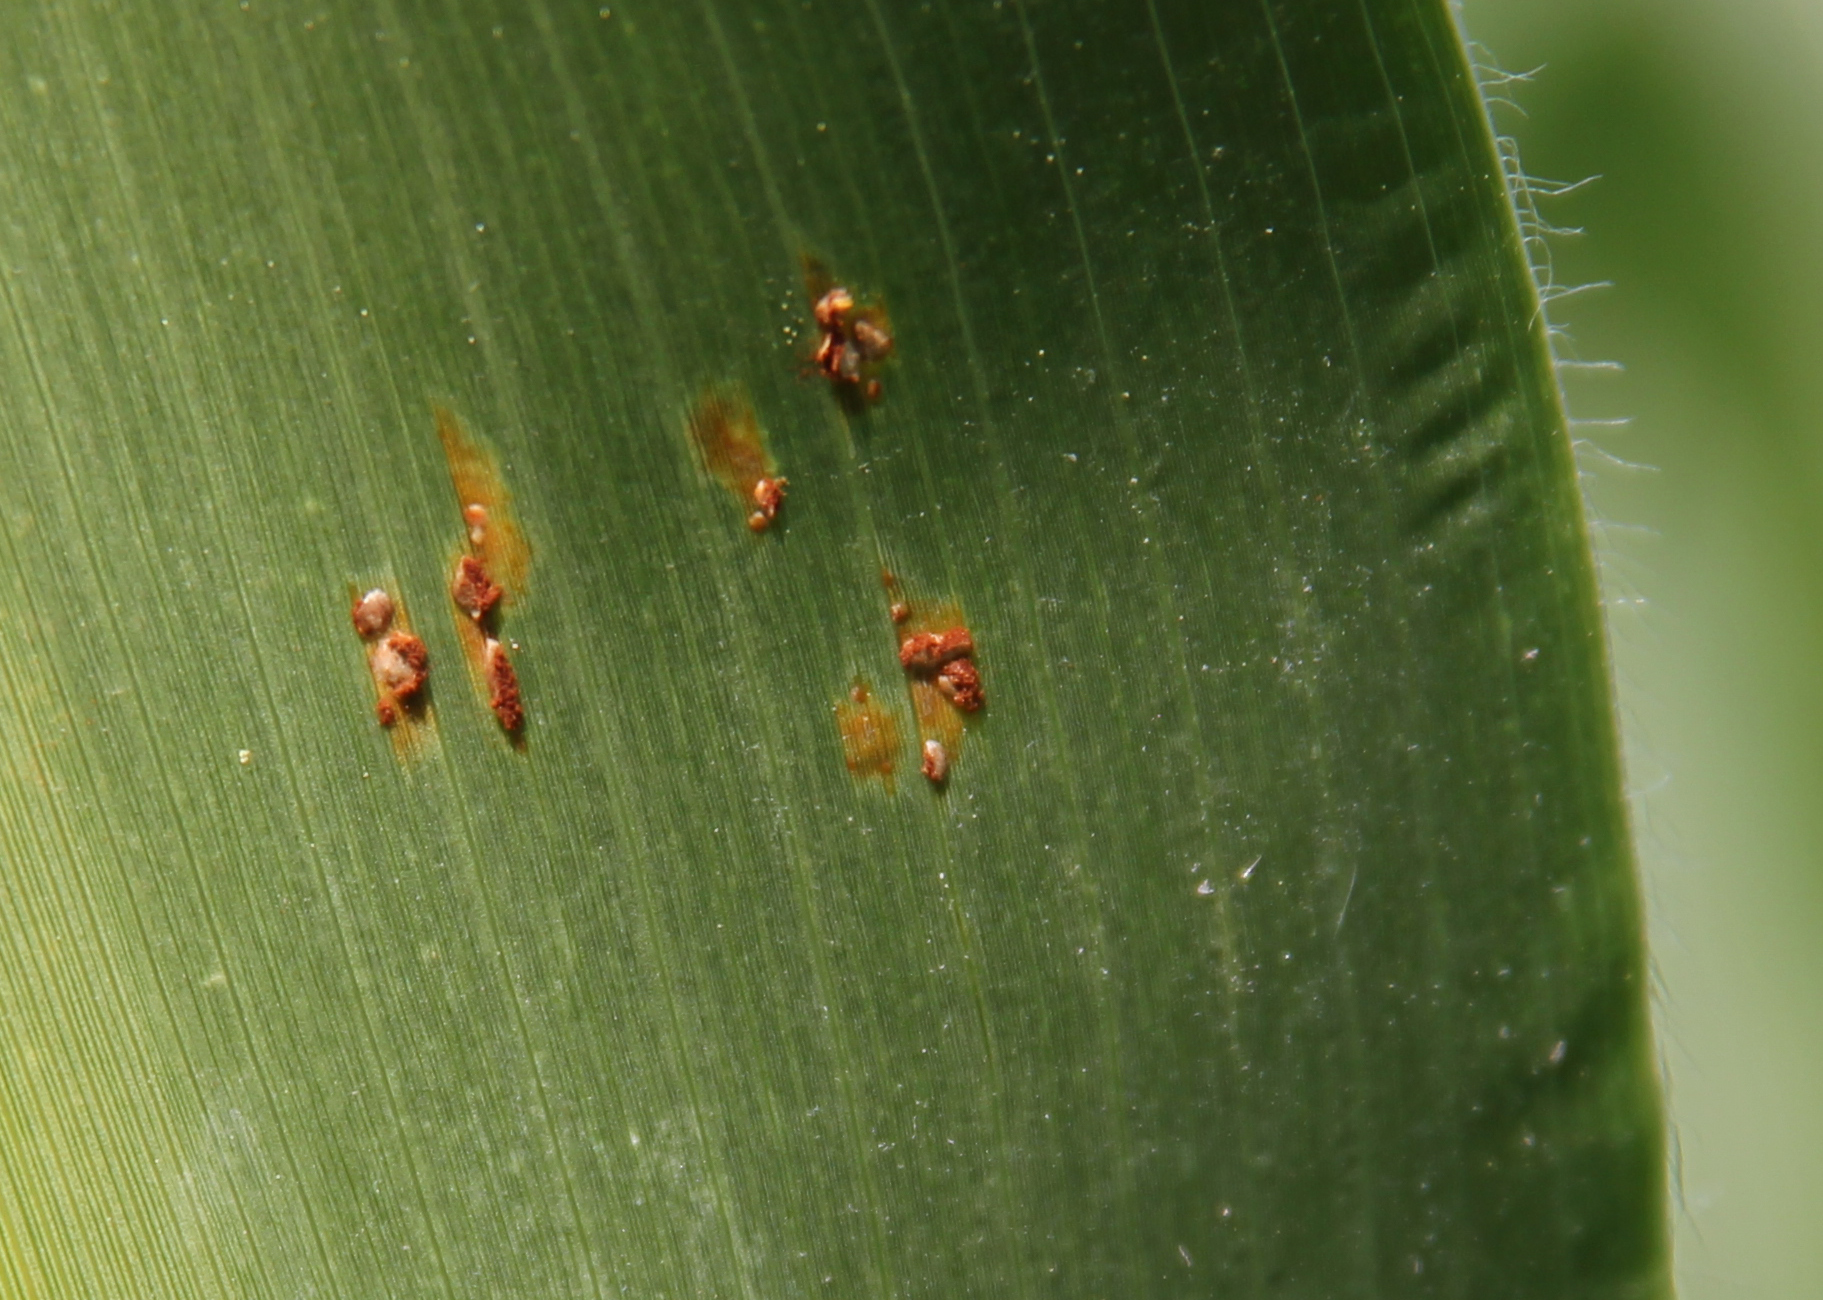 Common rust pustules erupting with brick-red spores.